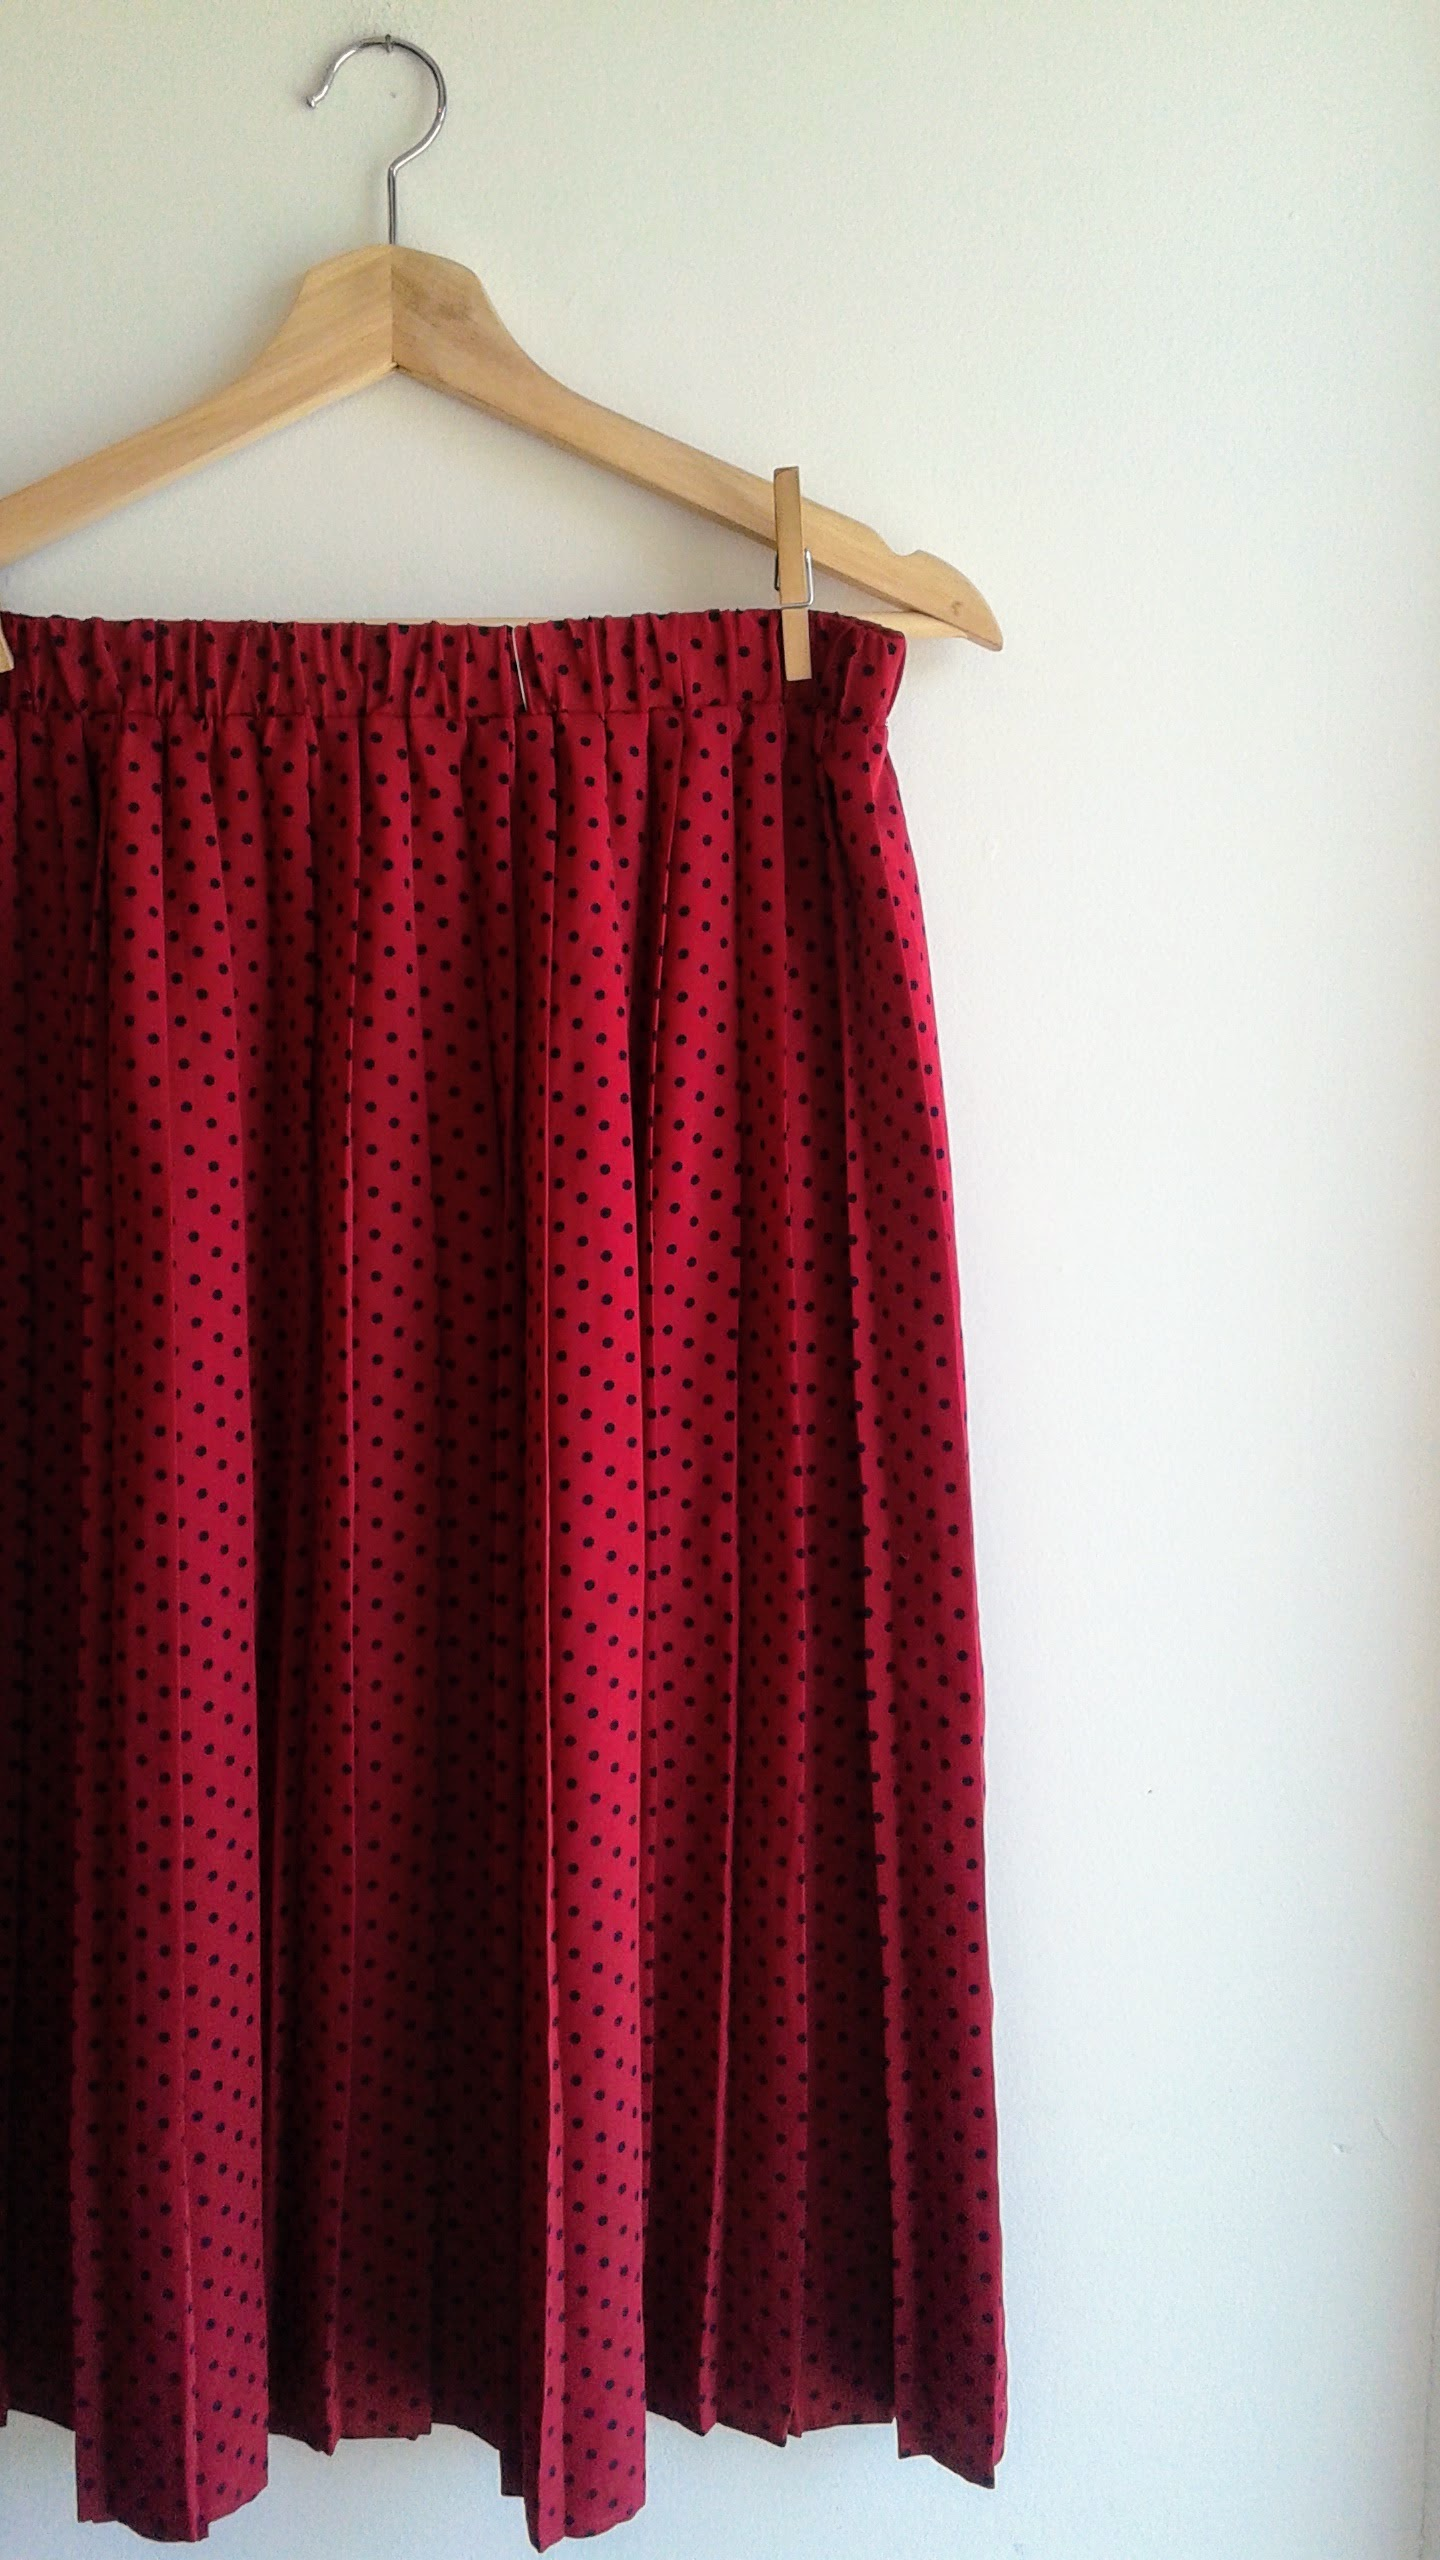 Karen Walker skirt; Size 8, $26